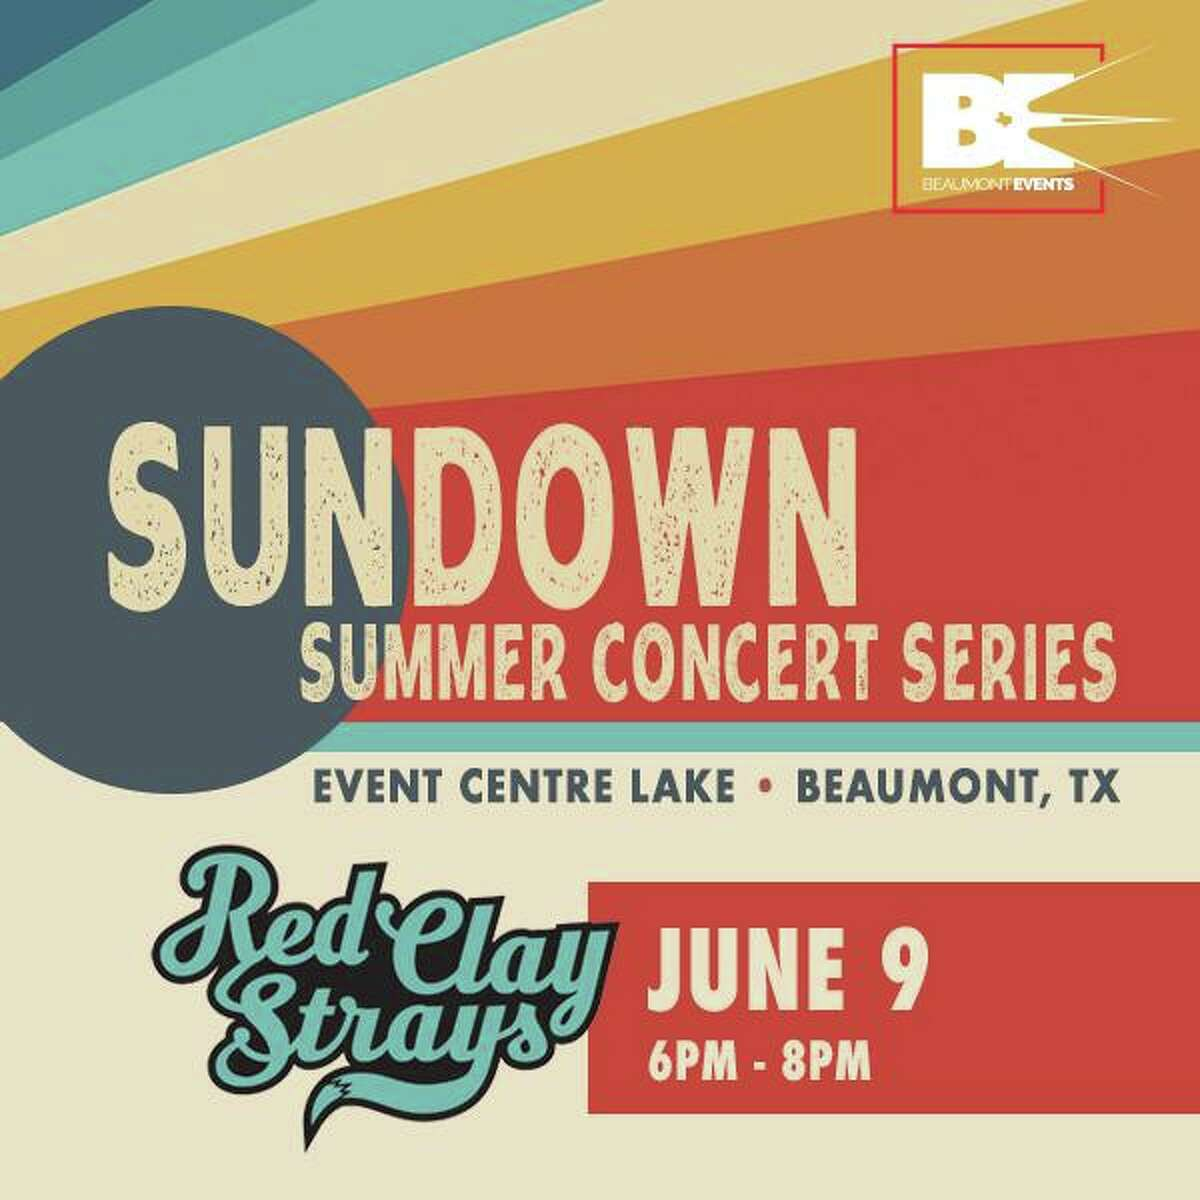 The Country band the Red Clay Strays will perform at the City of Beaumont's first Sundown Summer Series concert at the Event Centre Lake in Downtown on Wed, June 9.